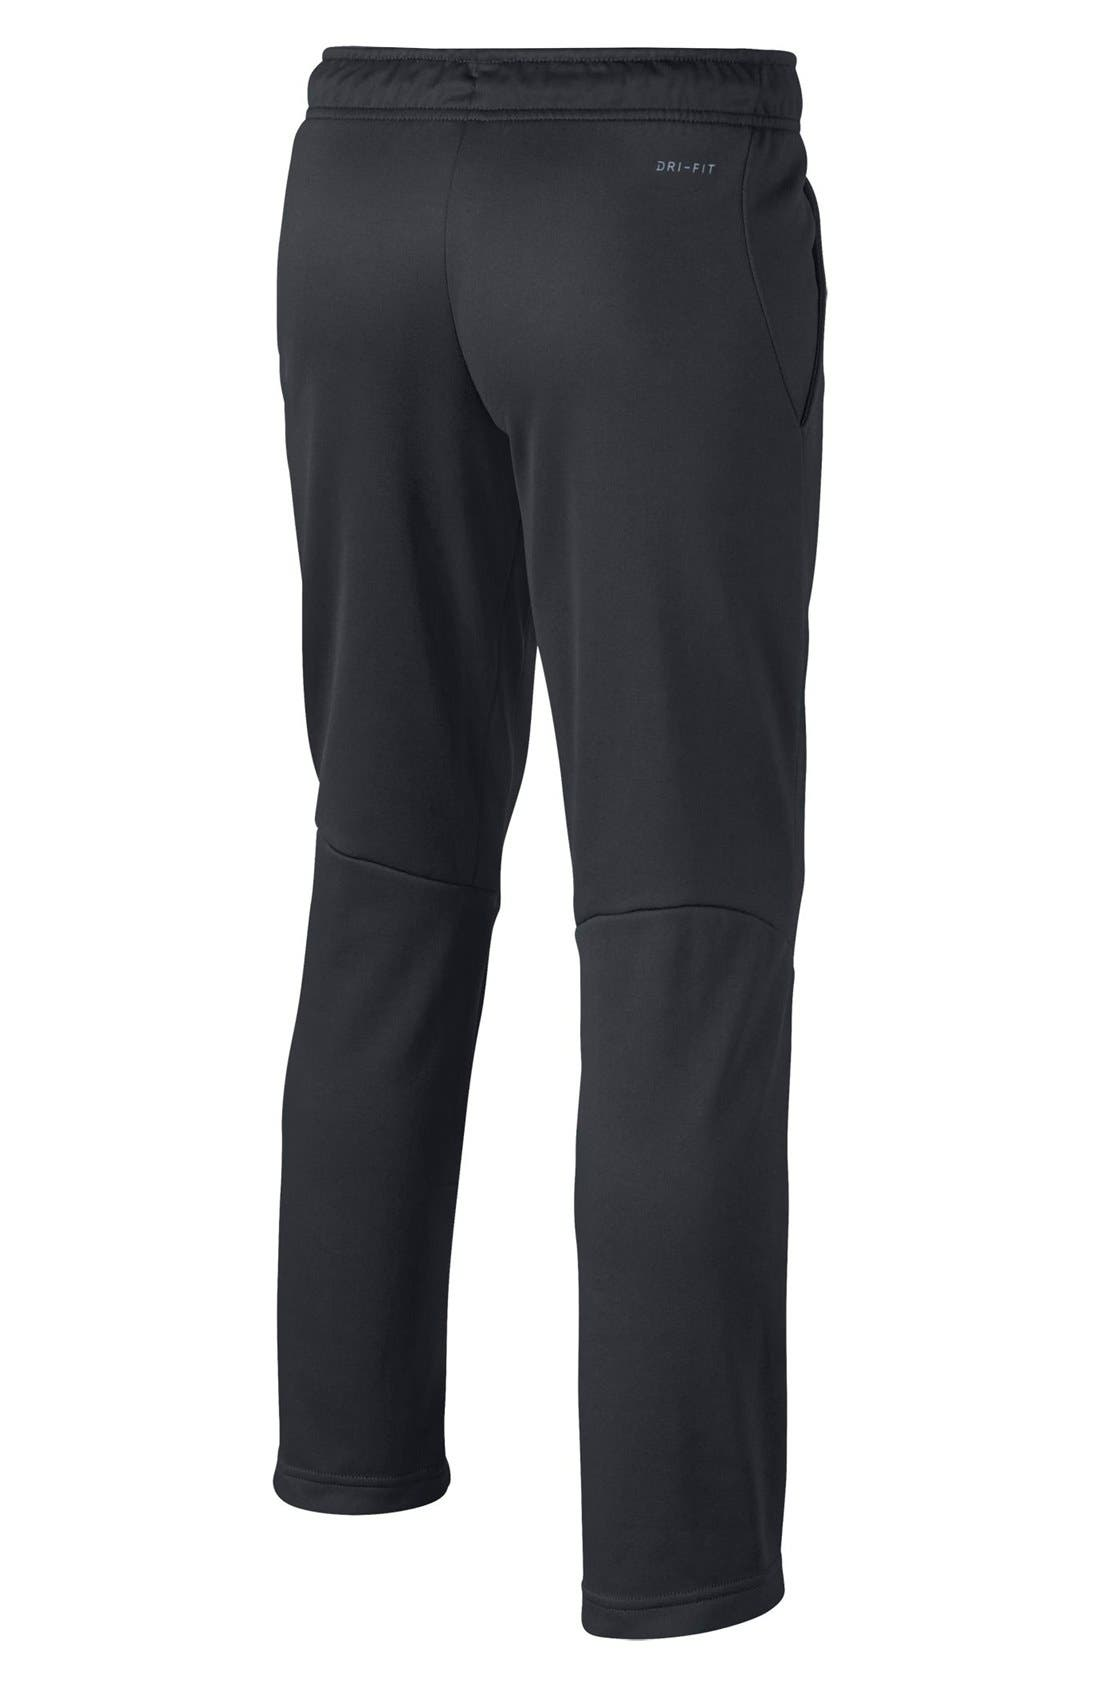 Therma-FIT Training Pants,                             Alternate thumbnail 19, color,